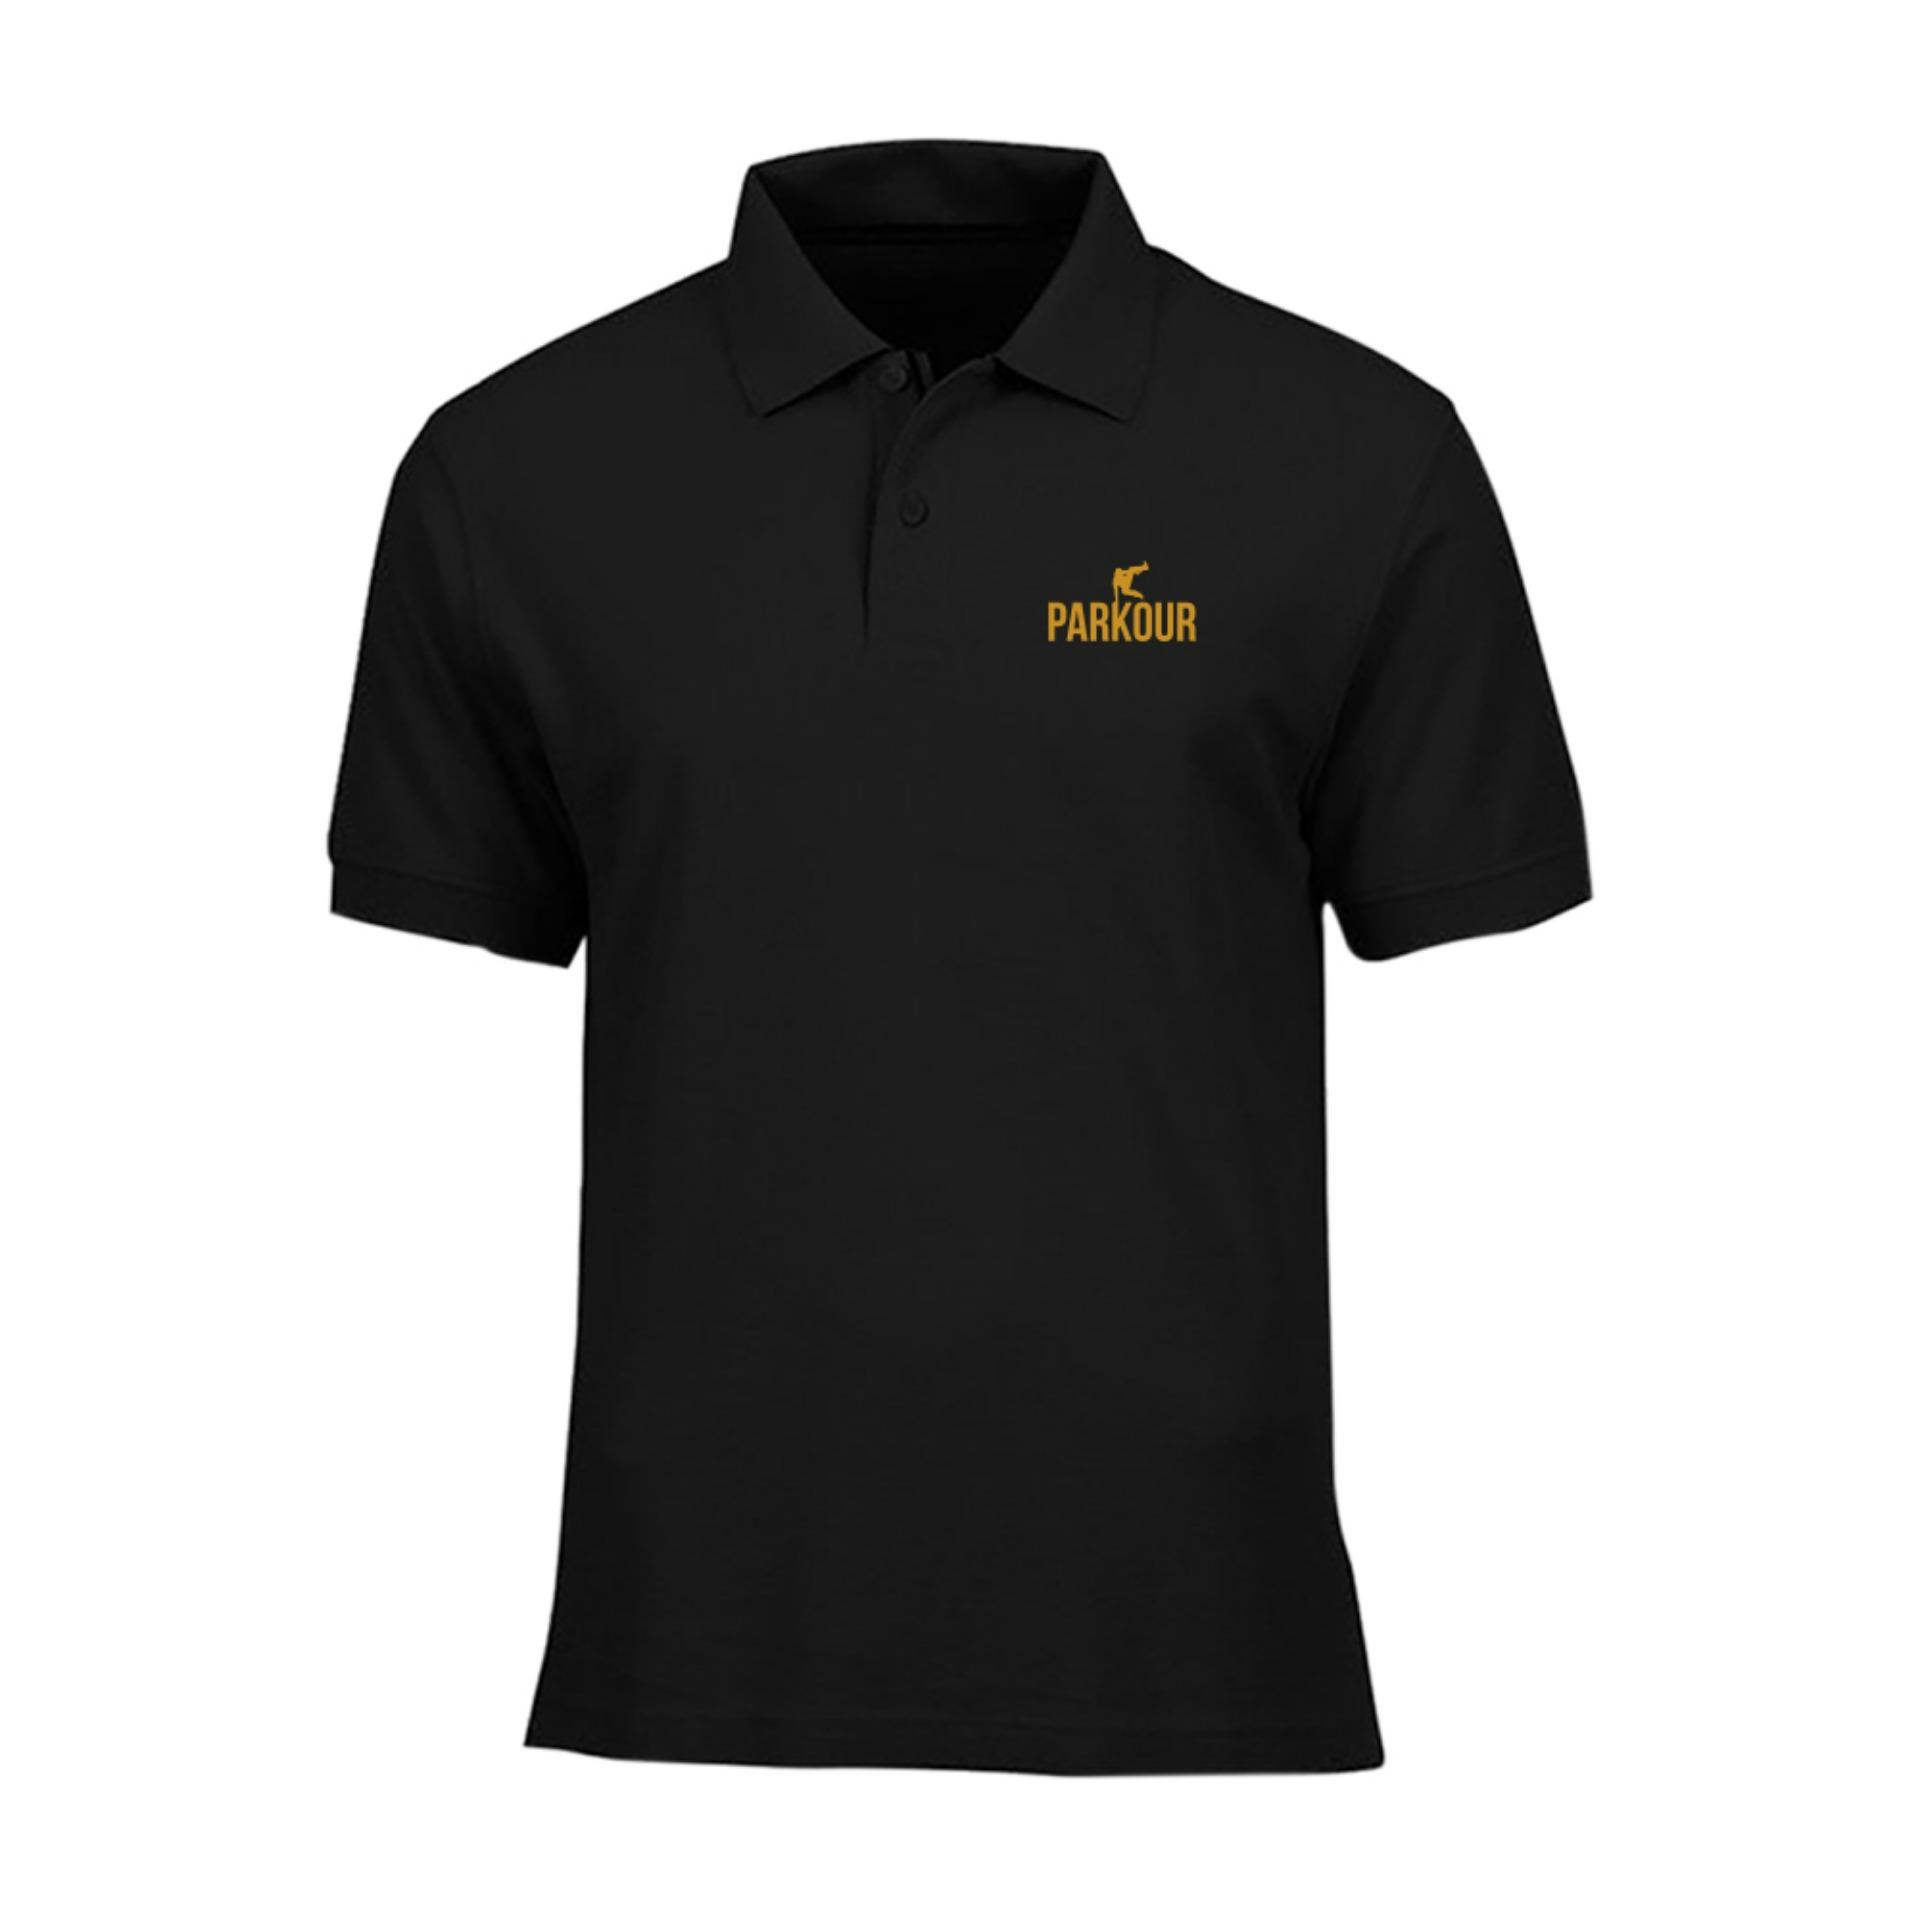 IndoClothing Polo Shirt Parkour - Hitam Gold